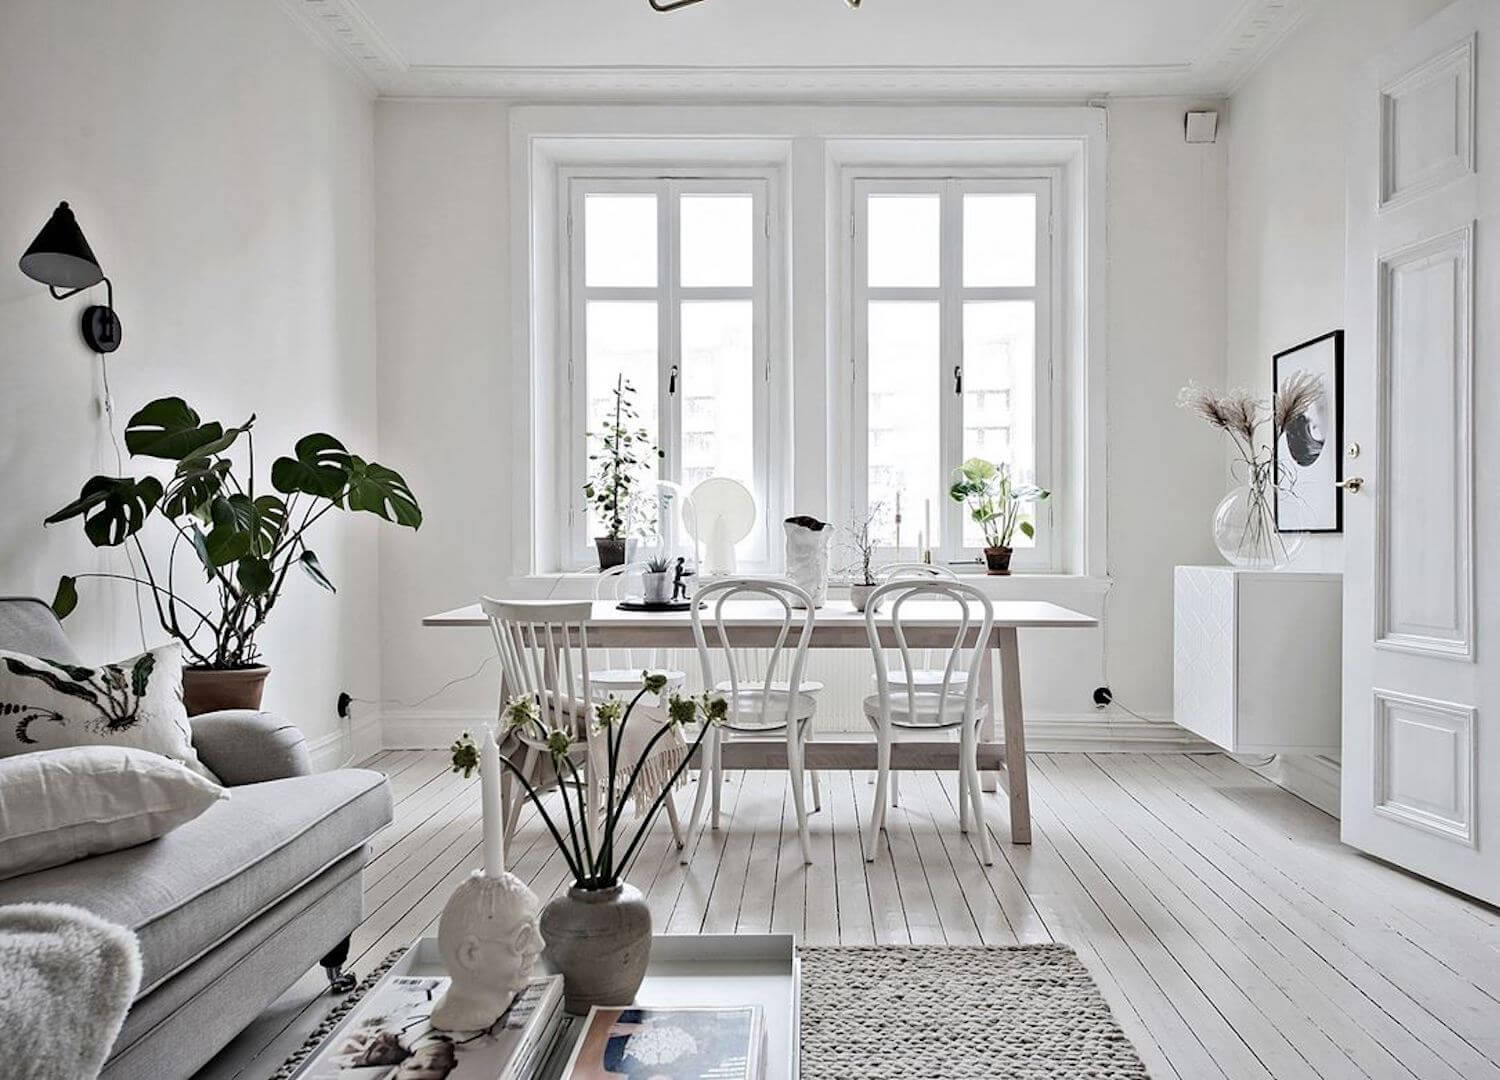 est living open house stockholm apartment 3